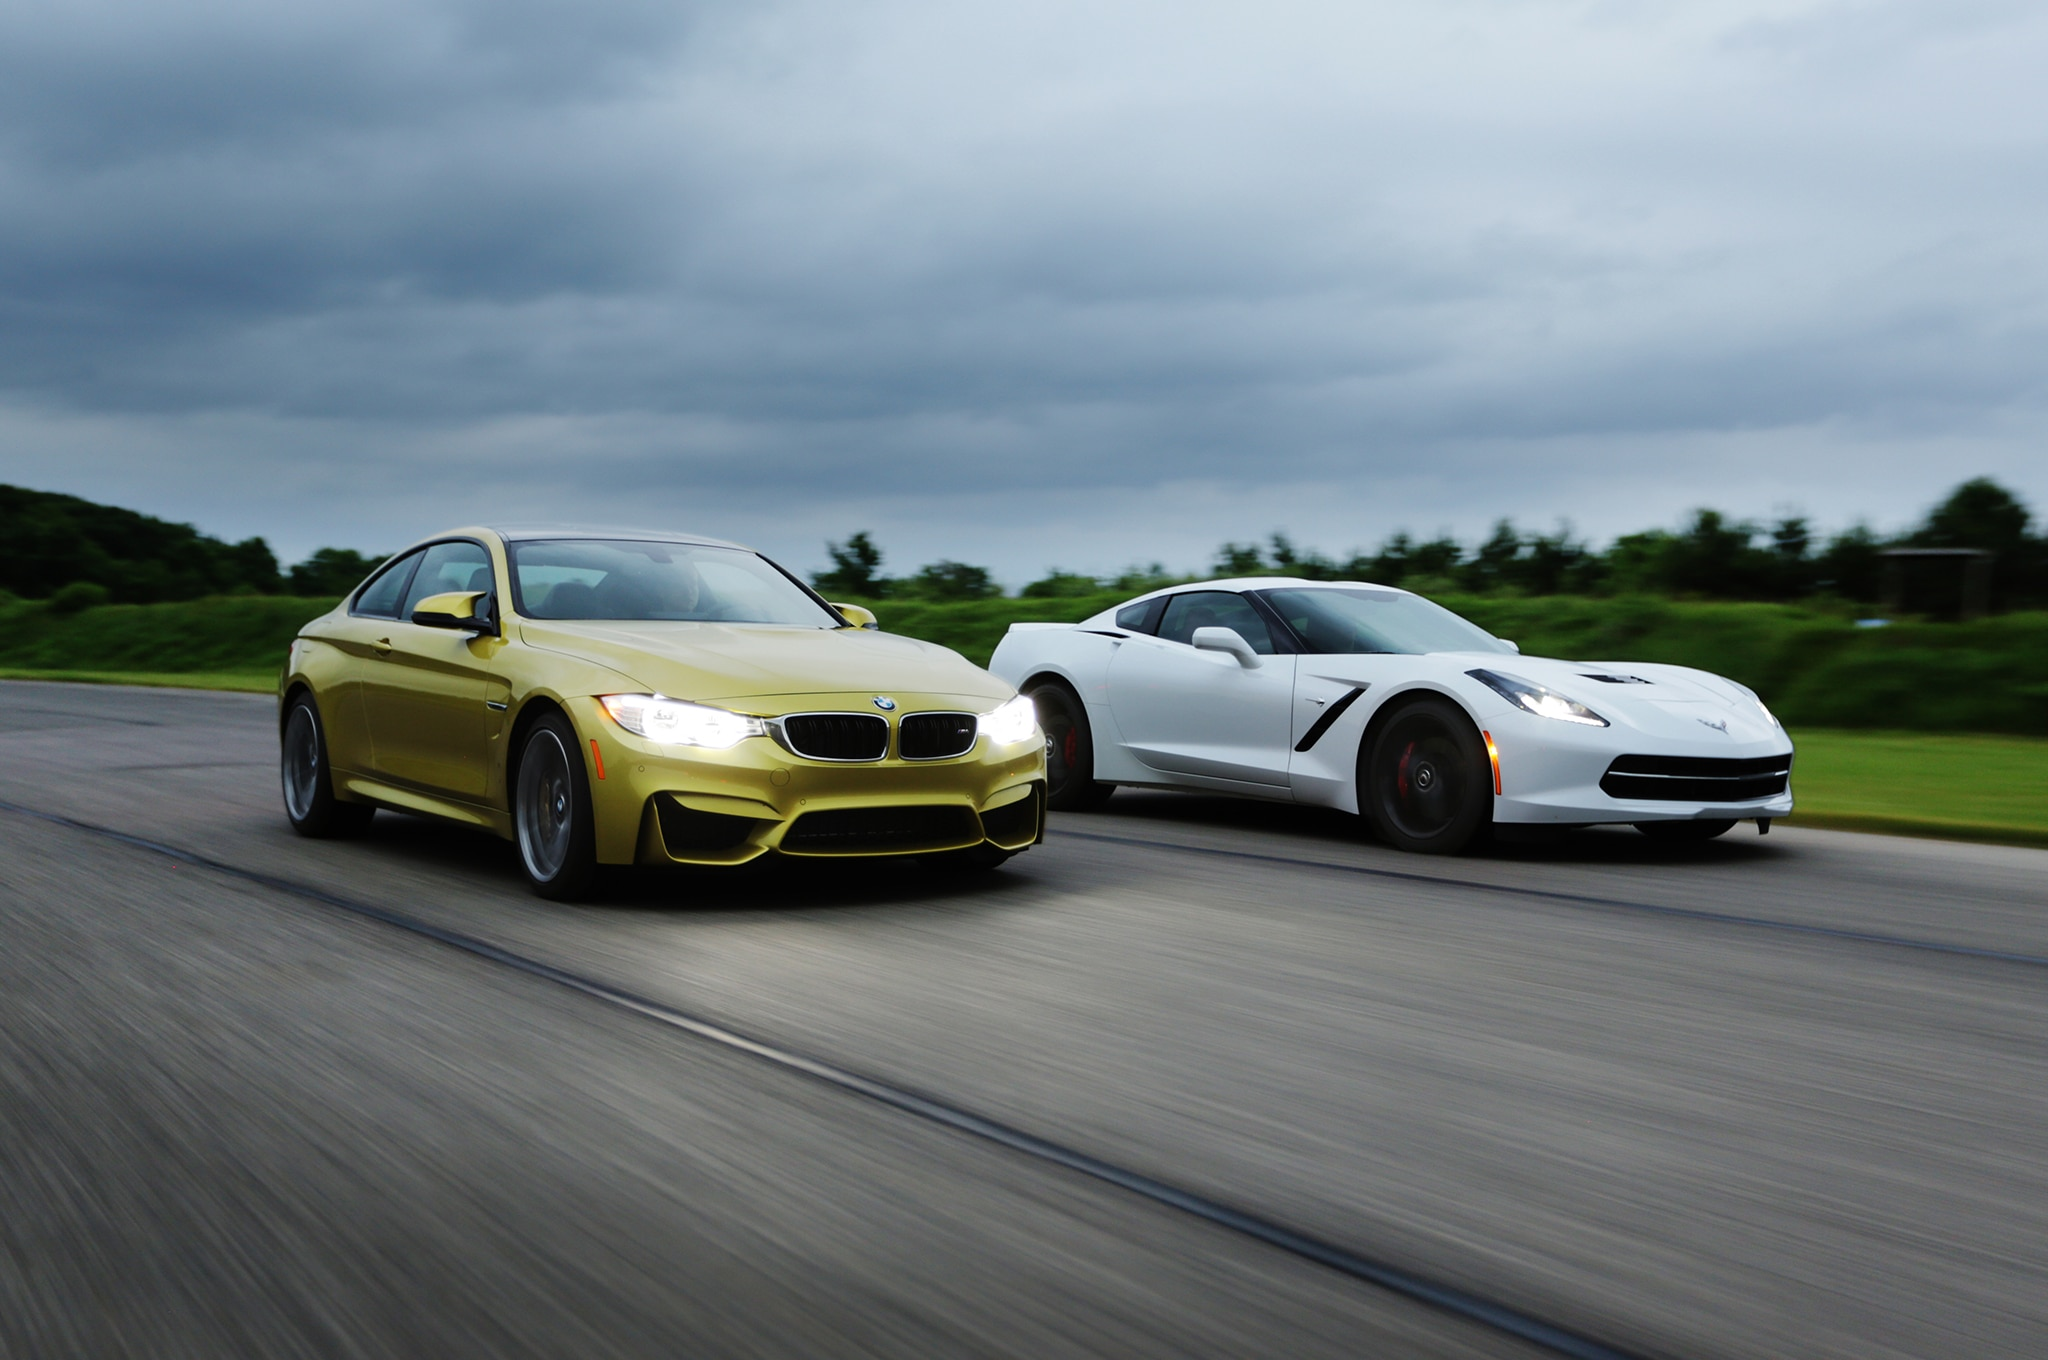 2014 Chevrolet Corvette 2015 Bmw M4 On Track 1